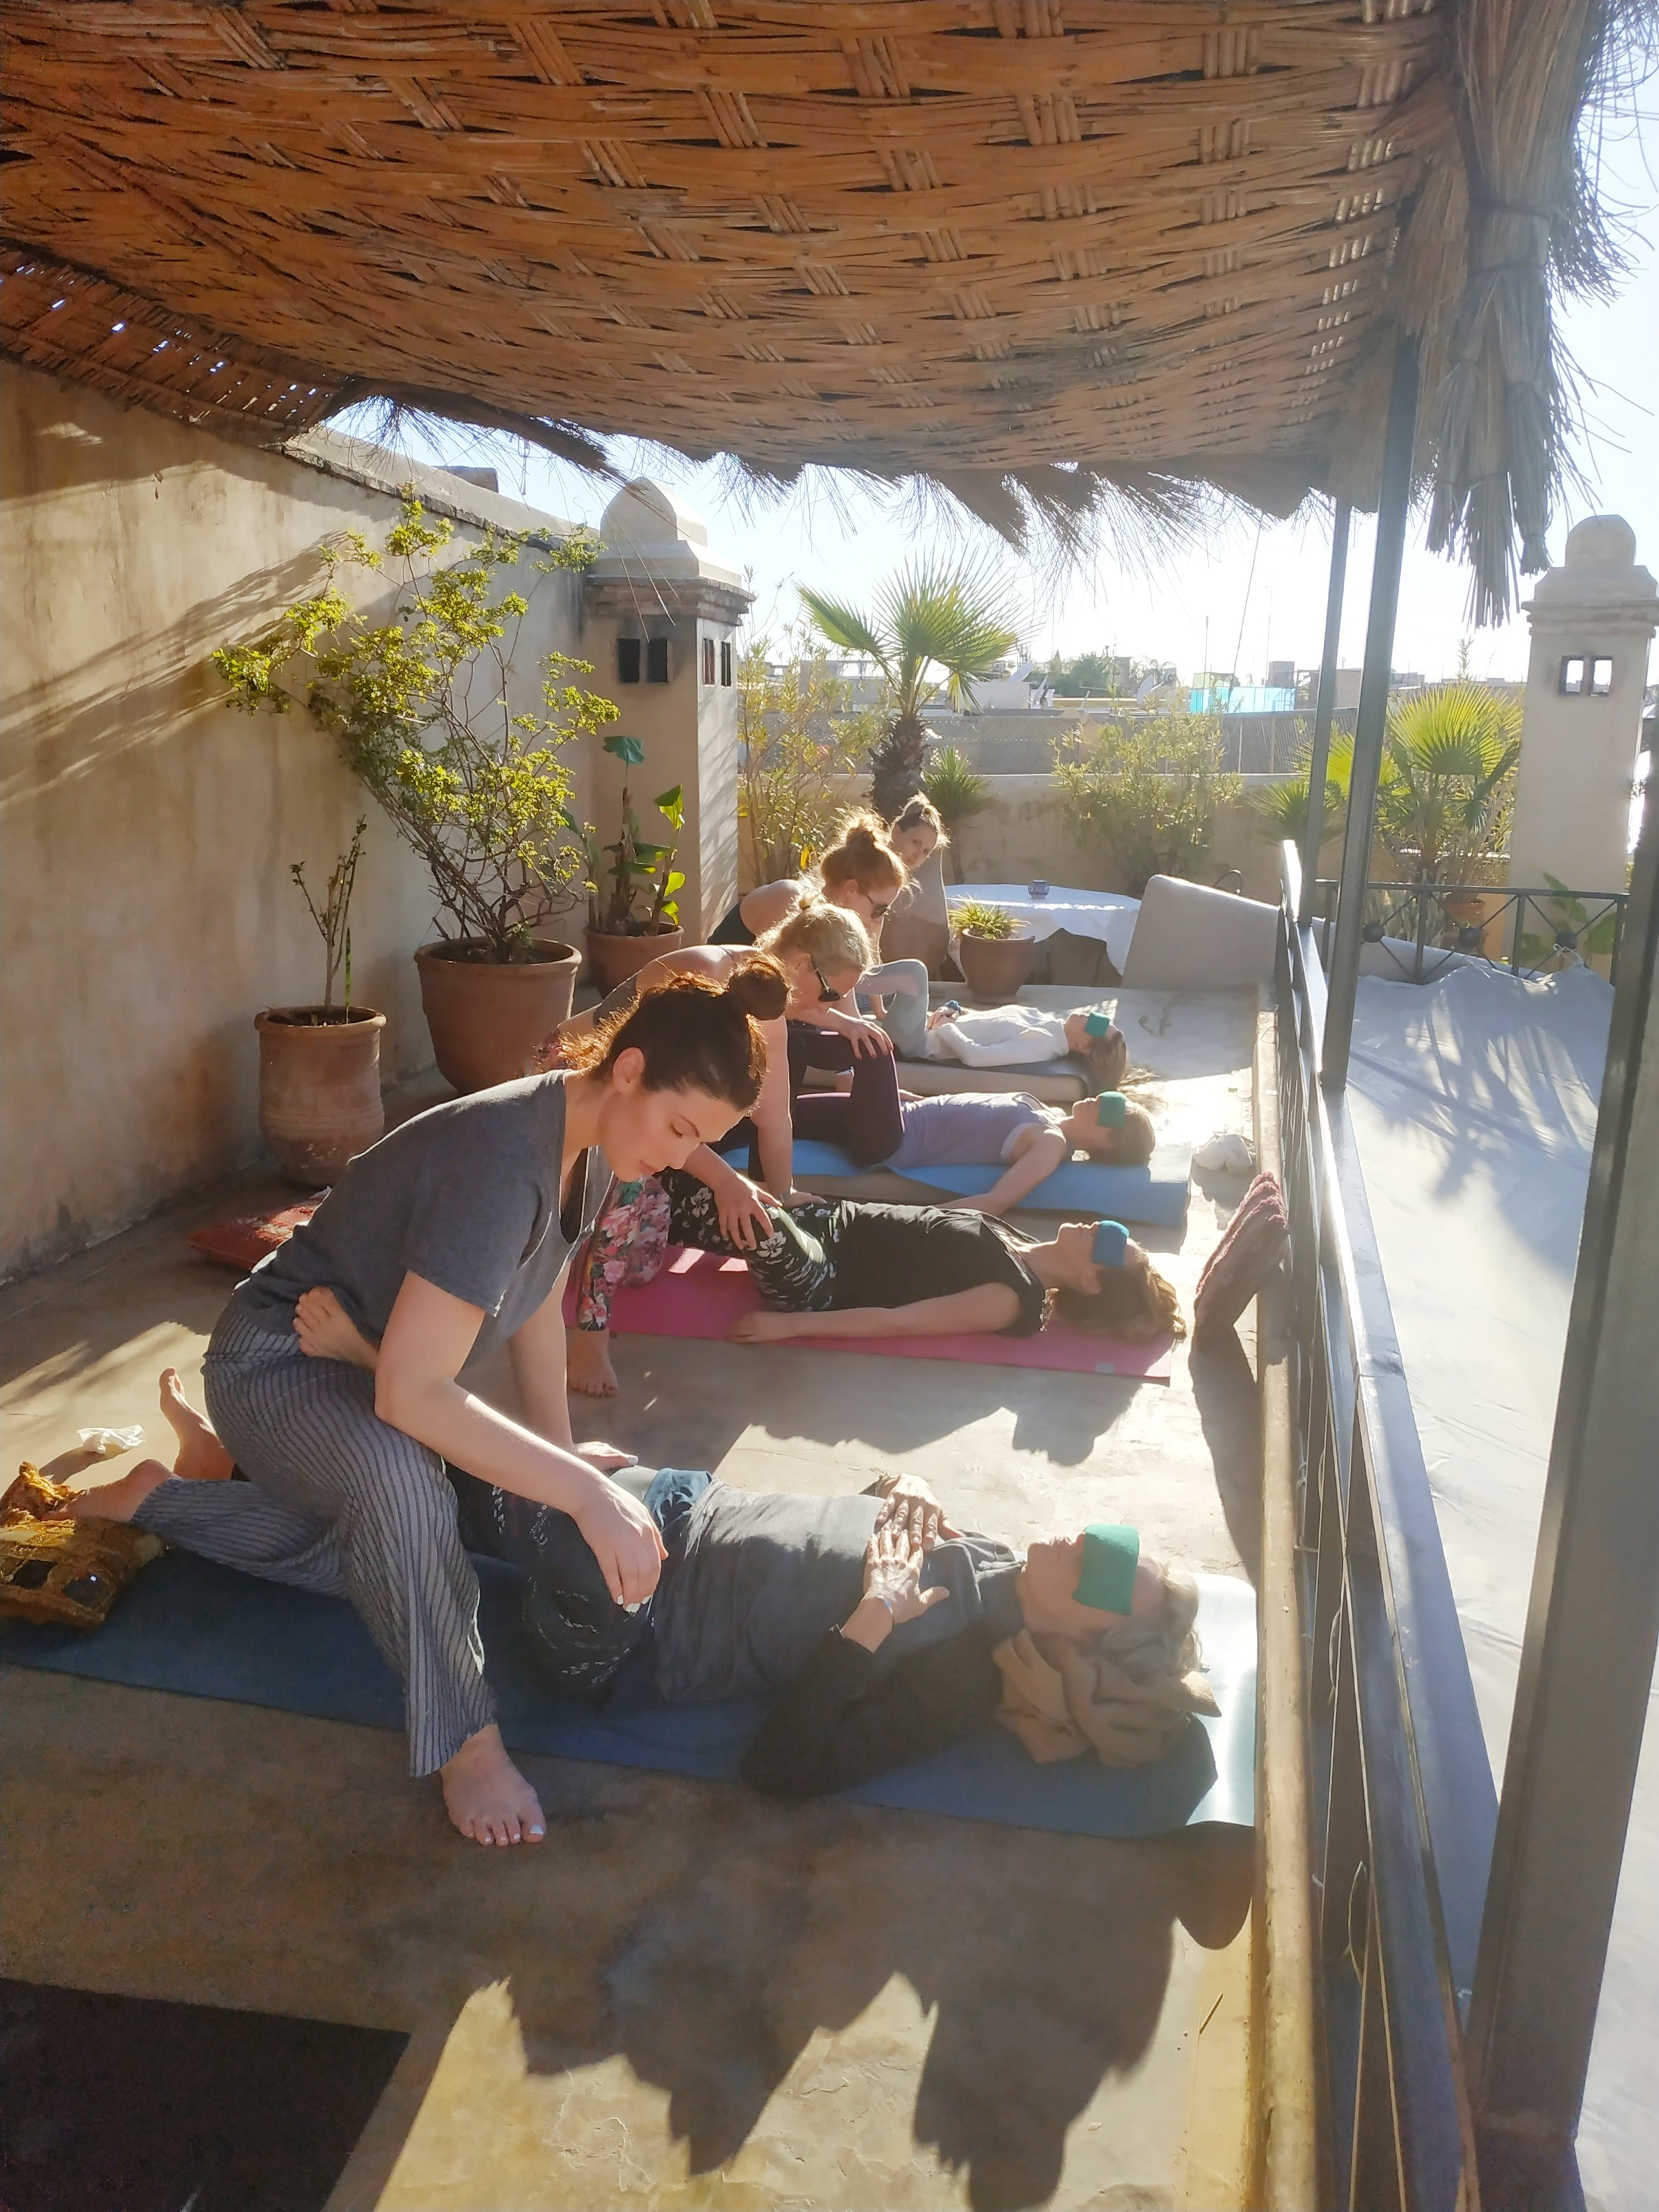 The girls learning the art of Thai massage.